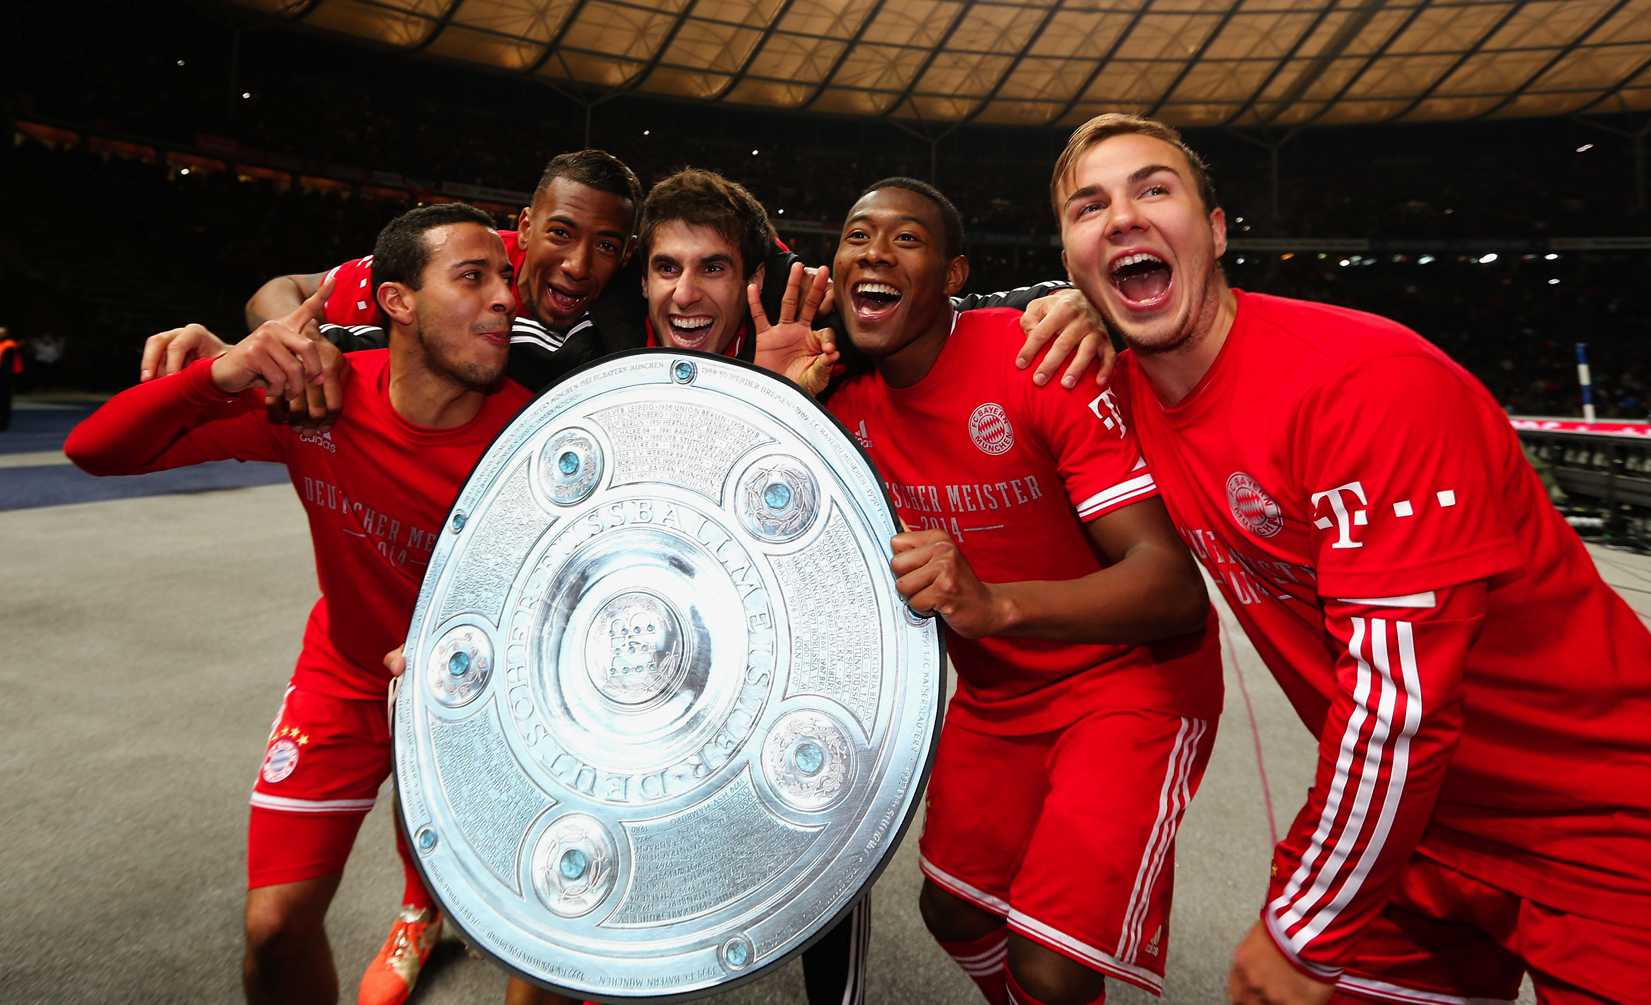 Thiago Alcantara, Jerome Boateng, Javier Martínez Aguinaga, David Alaba and Mario Goetze of Bayern Muenchen celebrate winning the German Championship after the Bundesliga match between Hertha BSC and FC Bayern Muenchen at Olympiastadion on March 25, 2014 in Berlin, Germany.